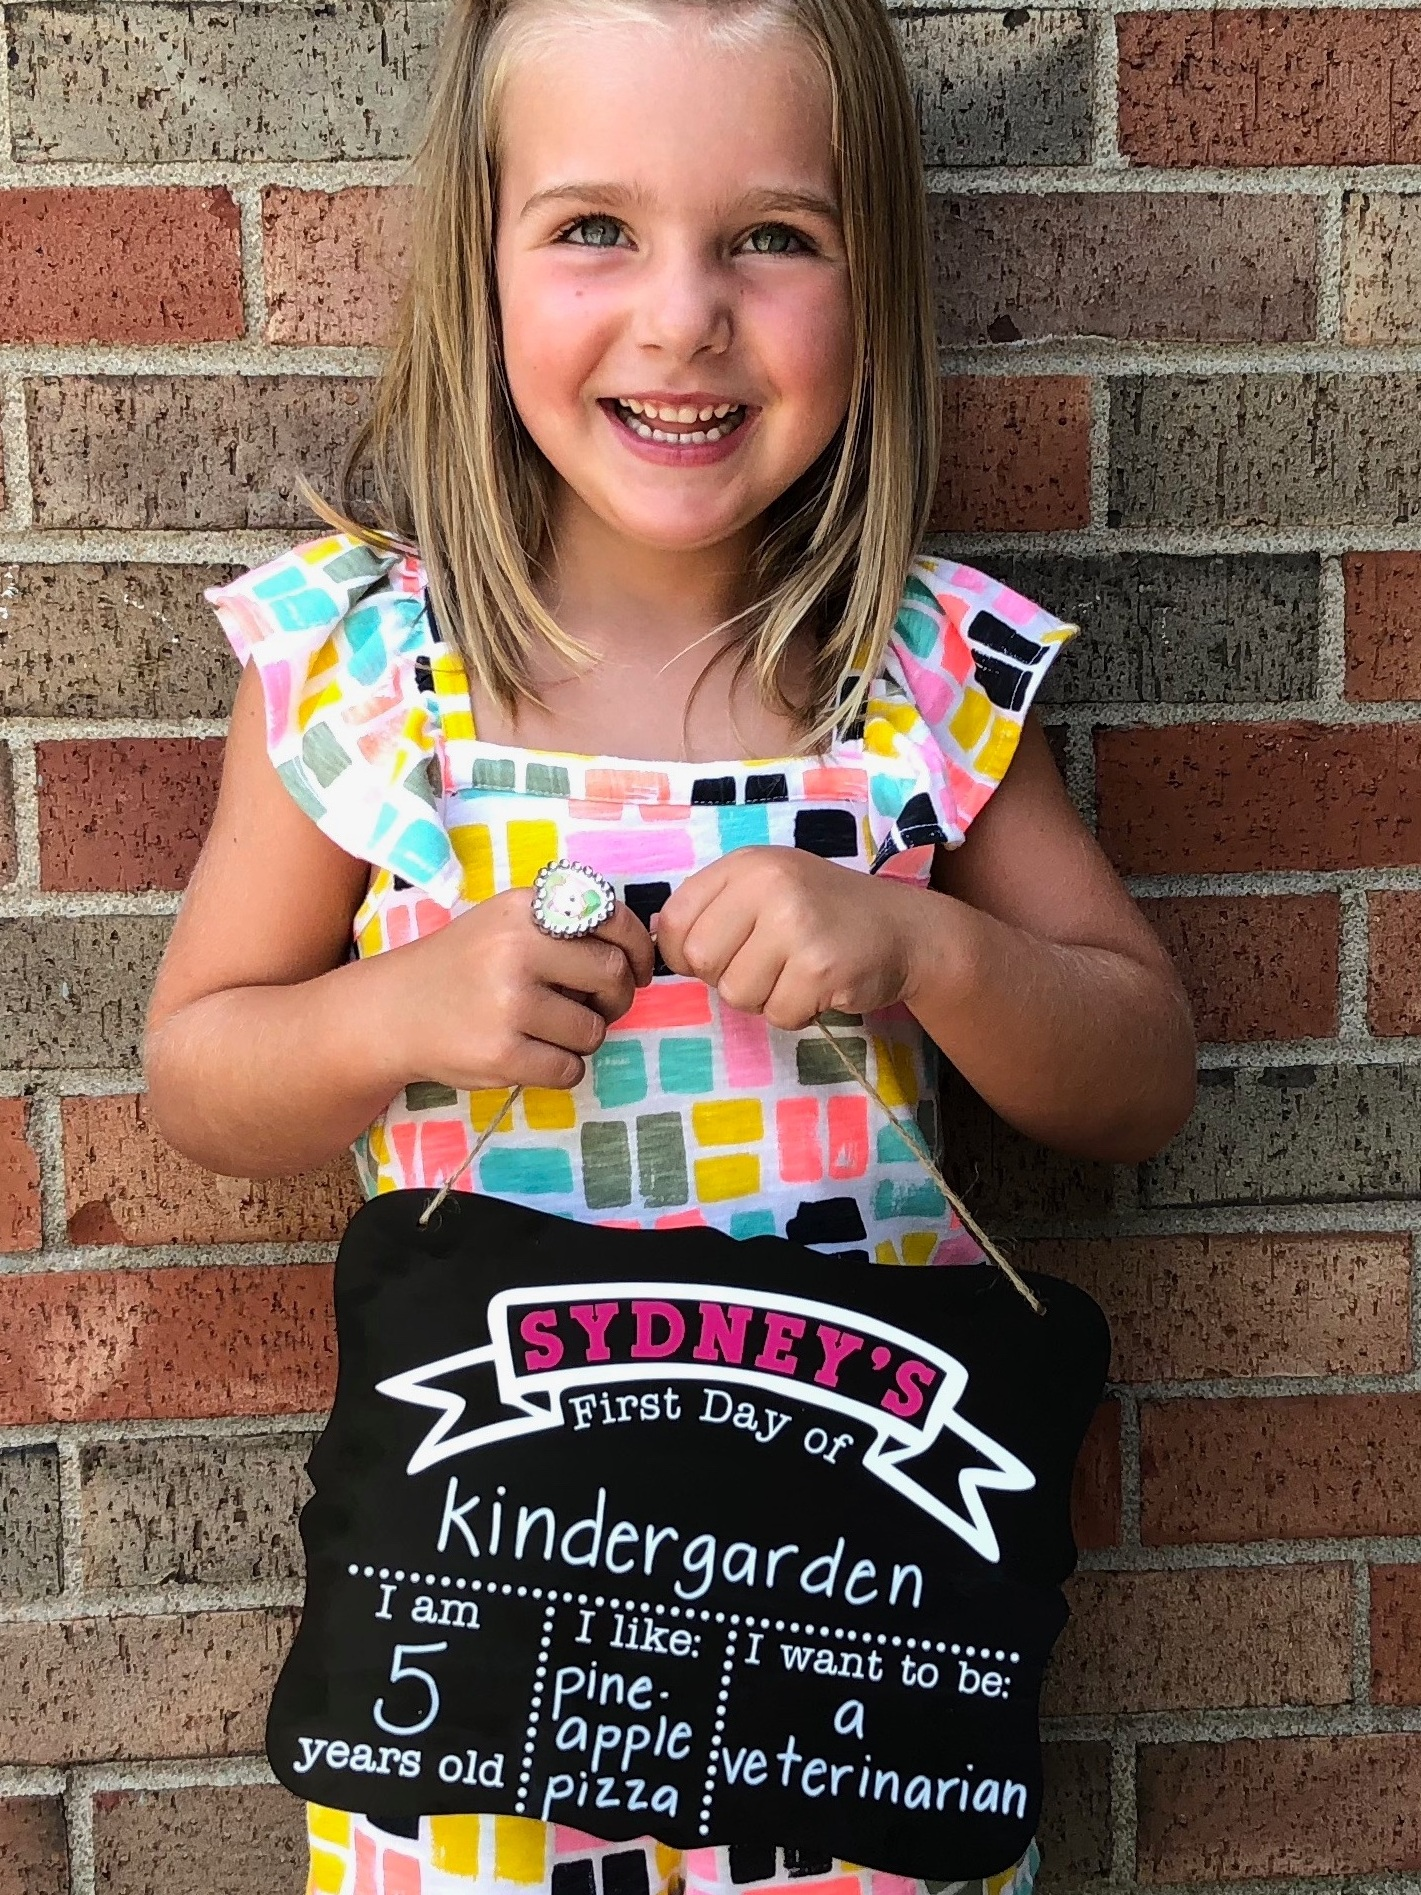 Back to School Cricut Project: First Day of School Chalkboard by Creative Cutting Classroom